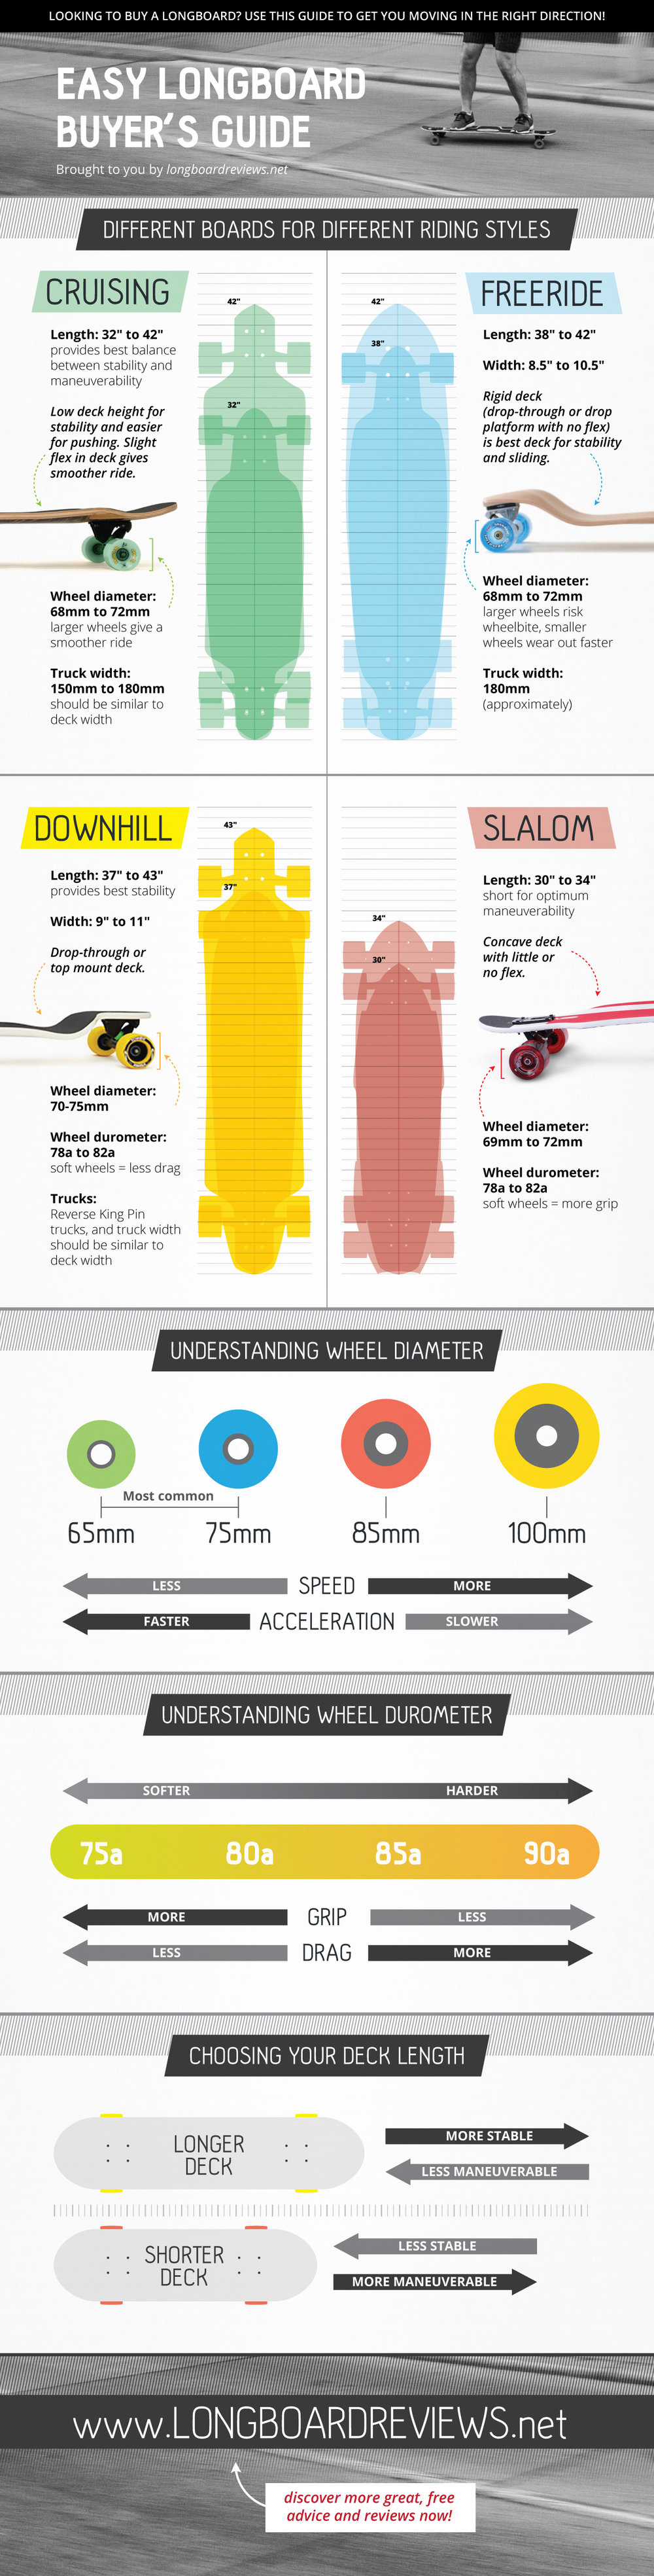 Easy Longboard Buyer's Guide infographic